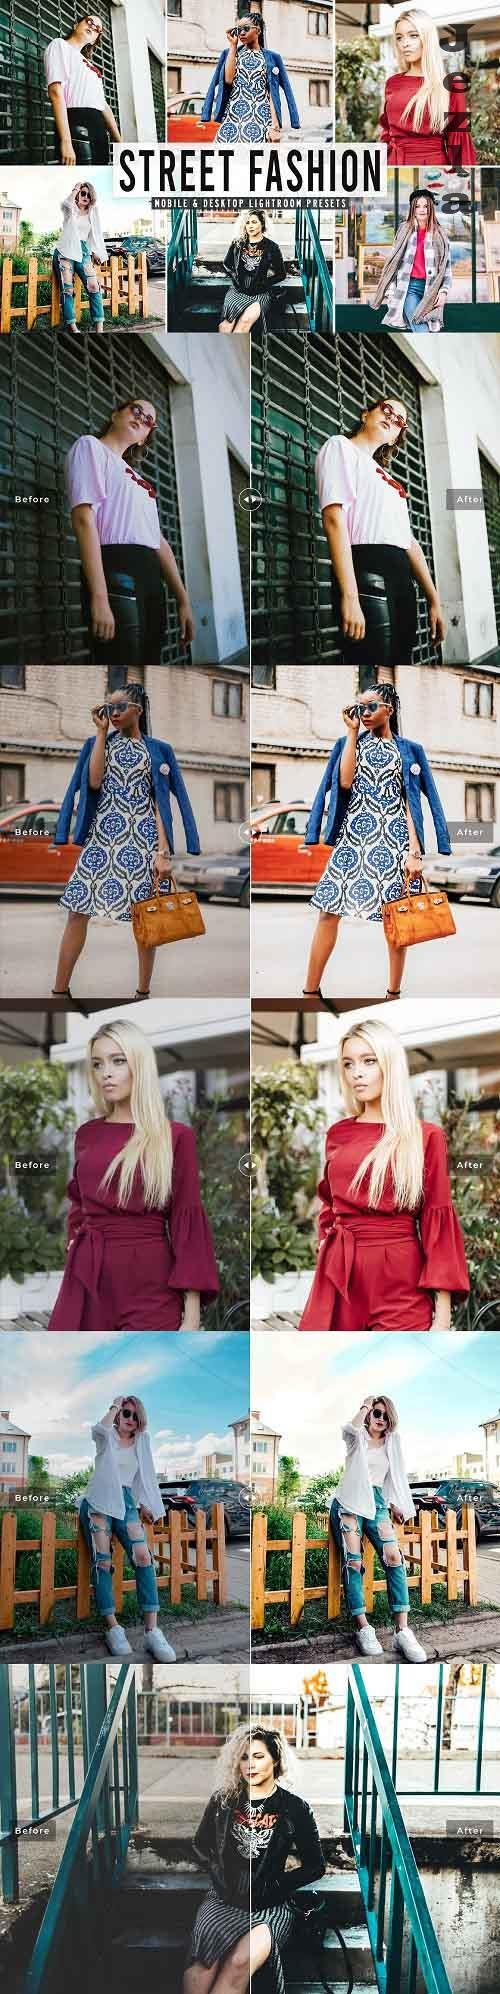 Street Fashion Pro Lightroom Presets - 5539480 - Mobile & Desktop